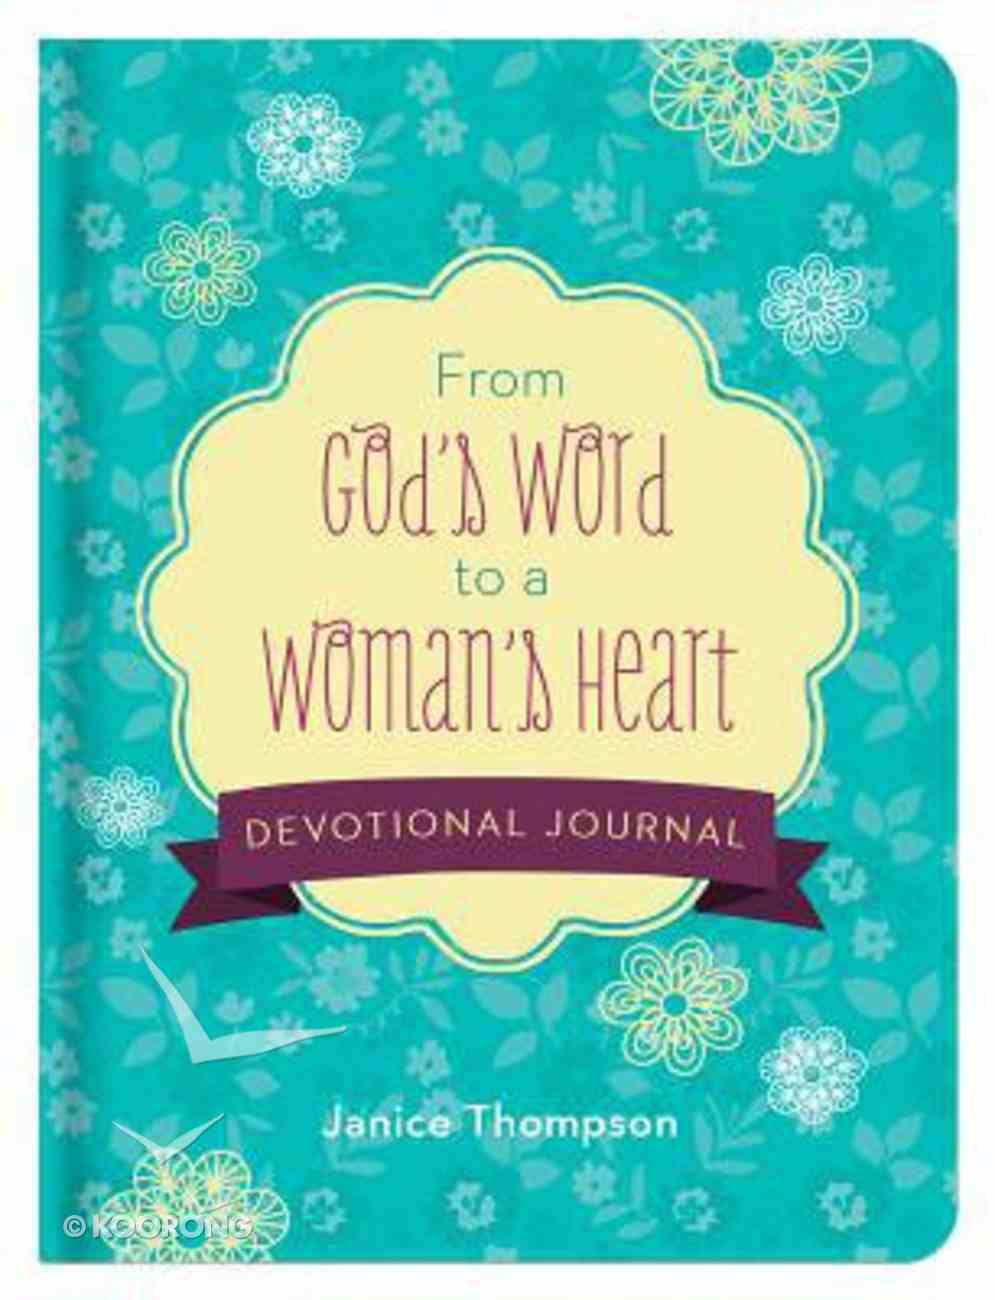 From God's Word to a Woman's Heart Devotional Journal Hardback